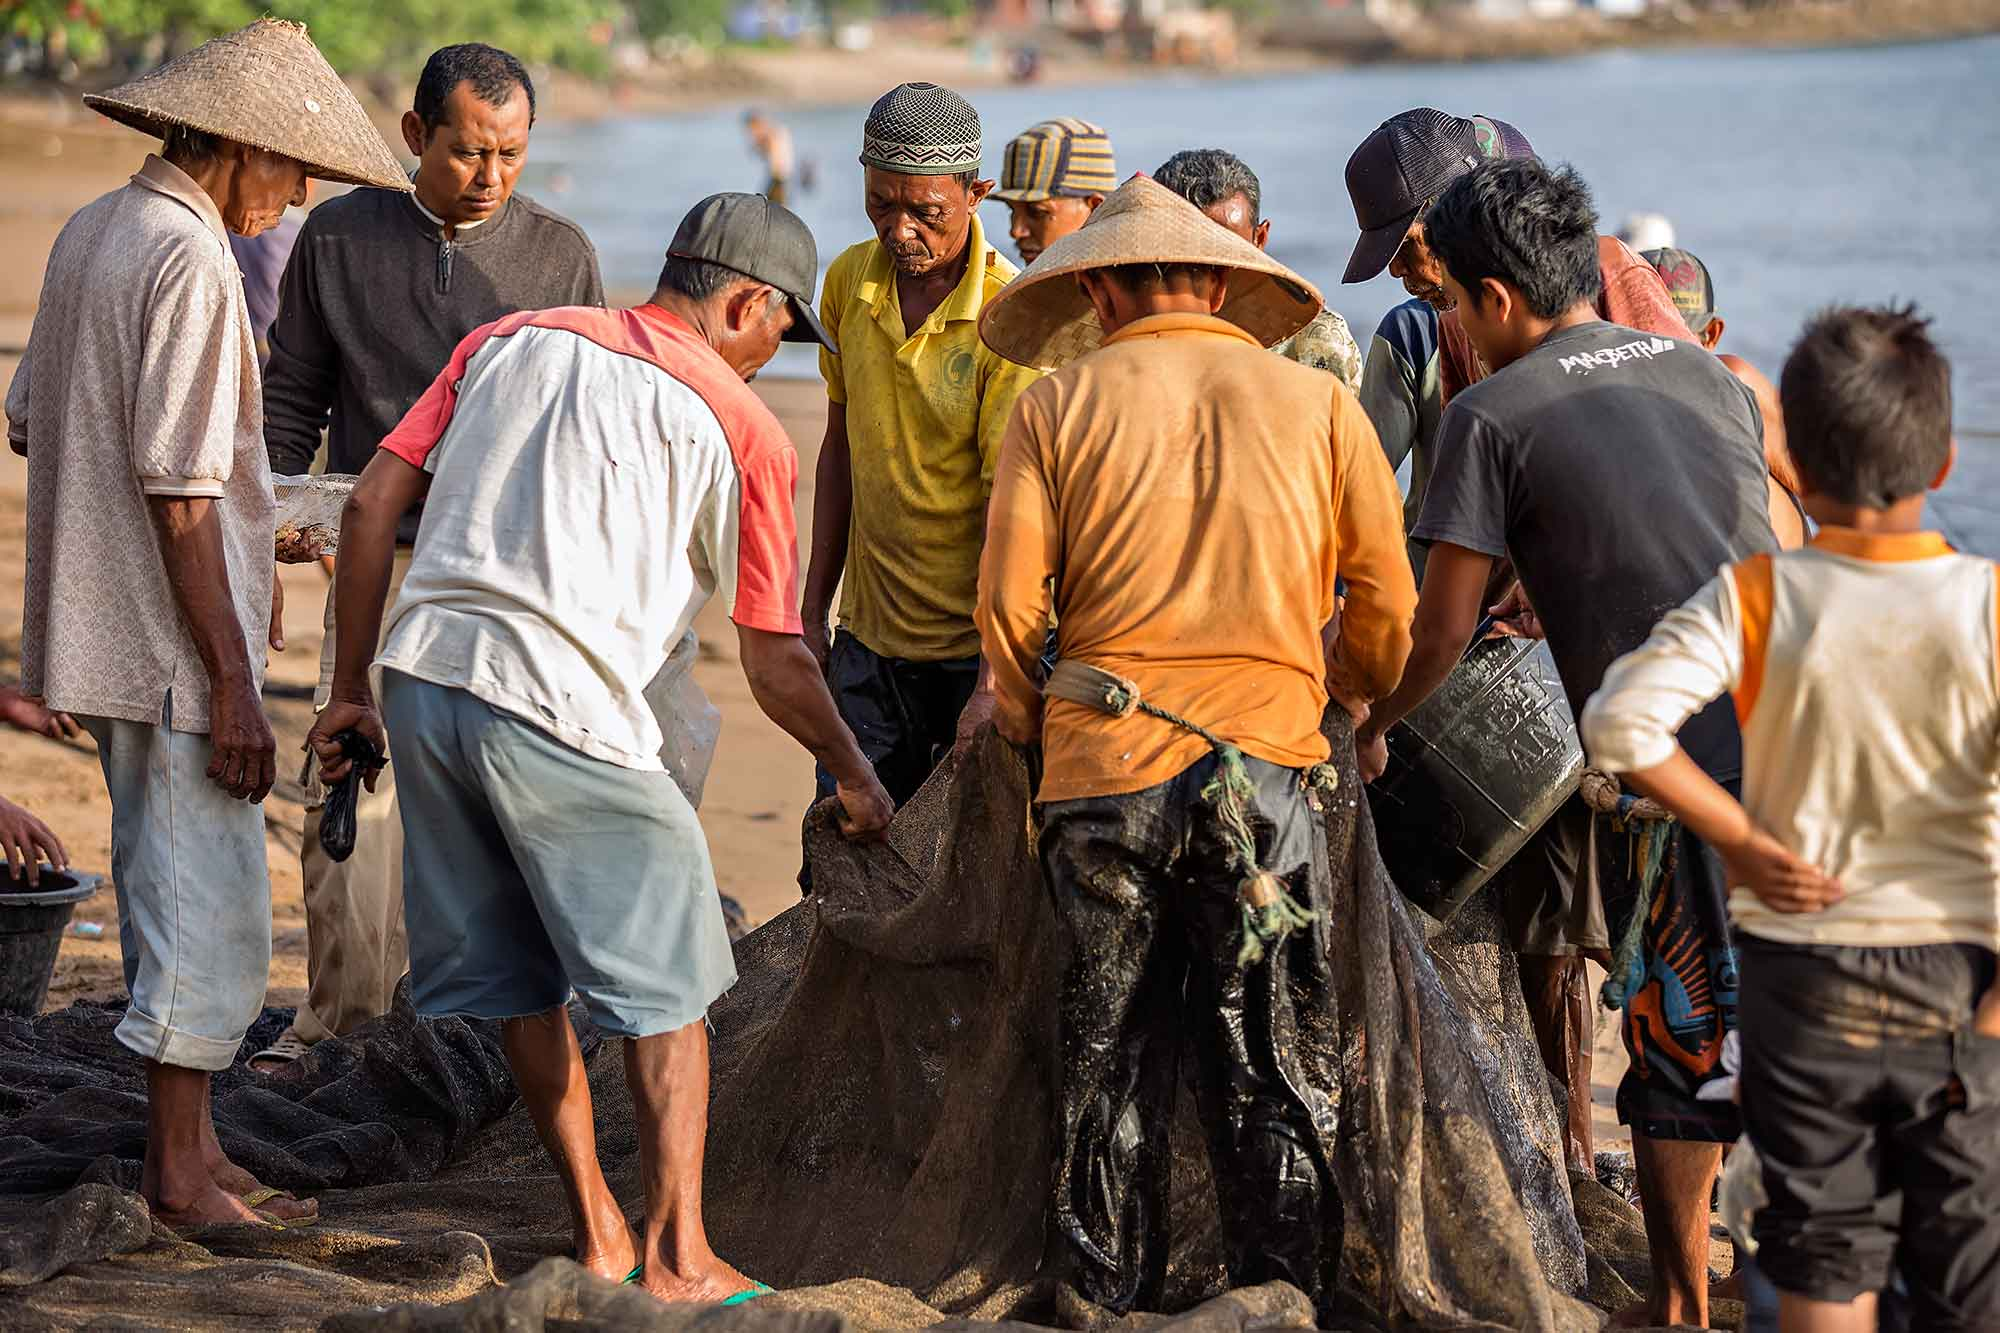 Fishermen browsing through the catch of the day on Bungus beach in West Sumatra, Indonesia. © Ulli Maier & Nisa Maier